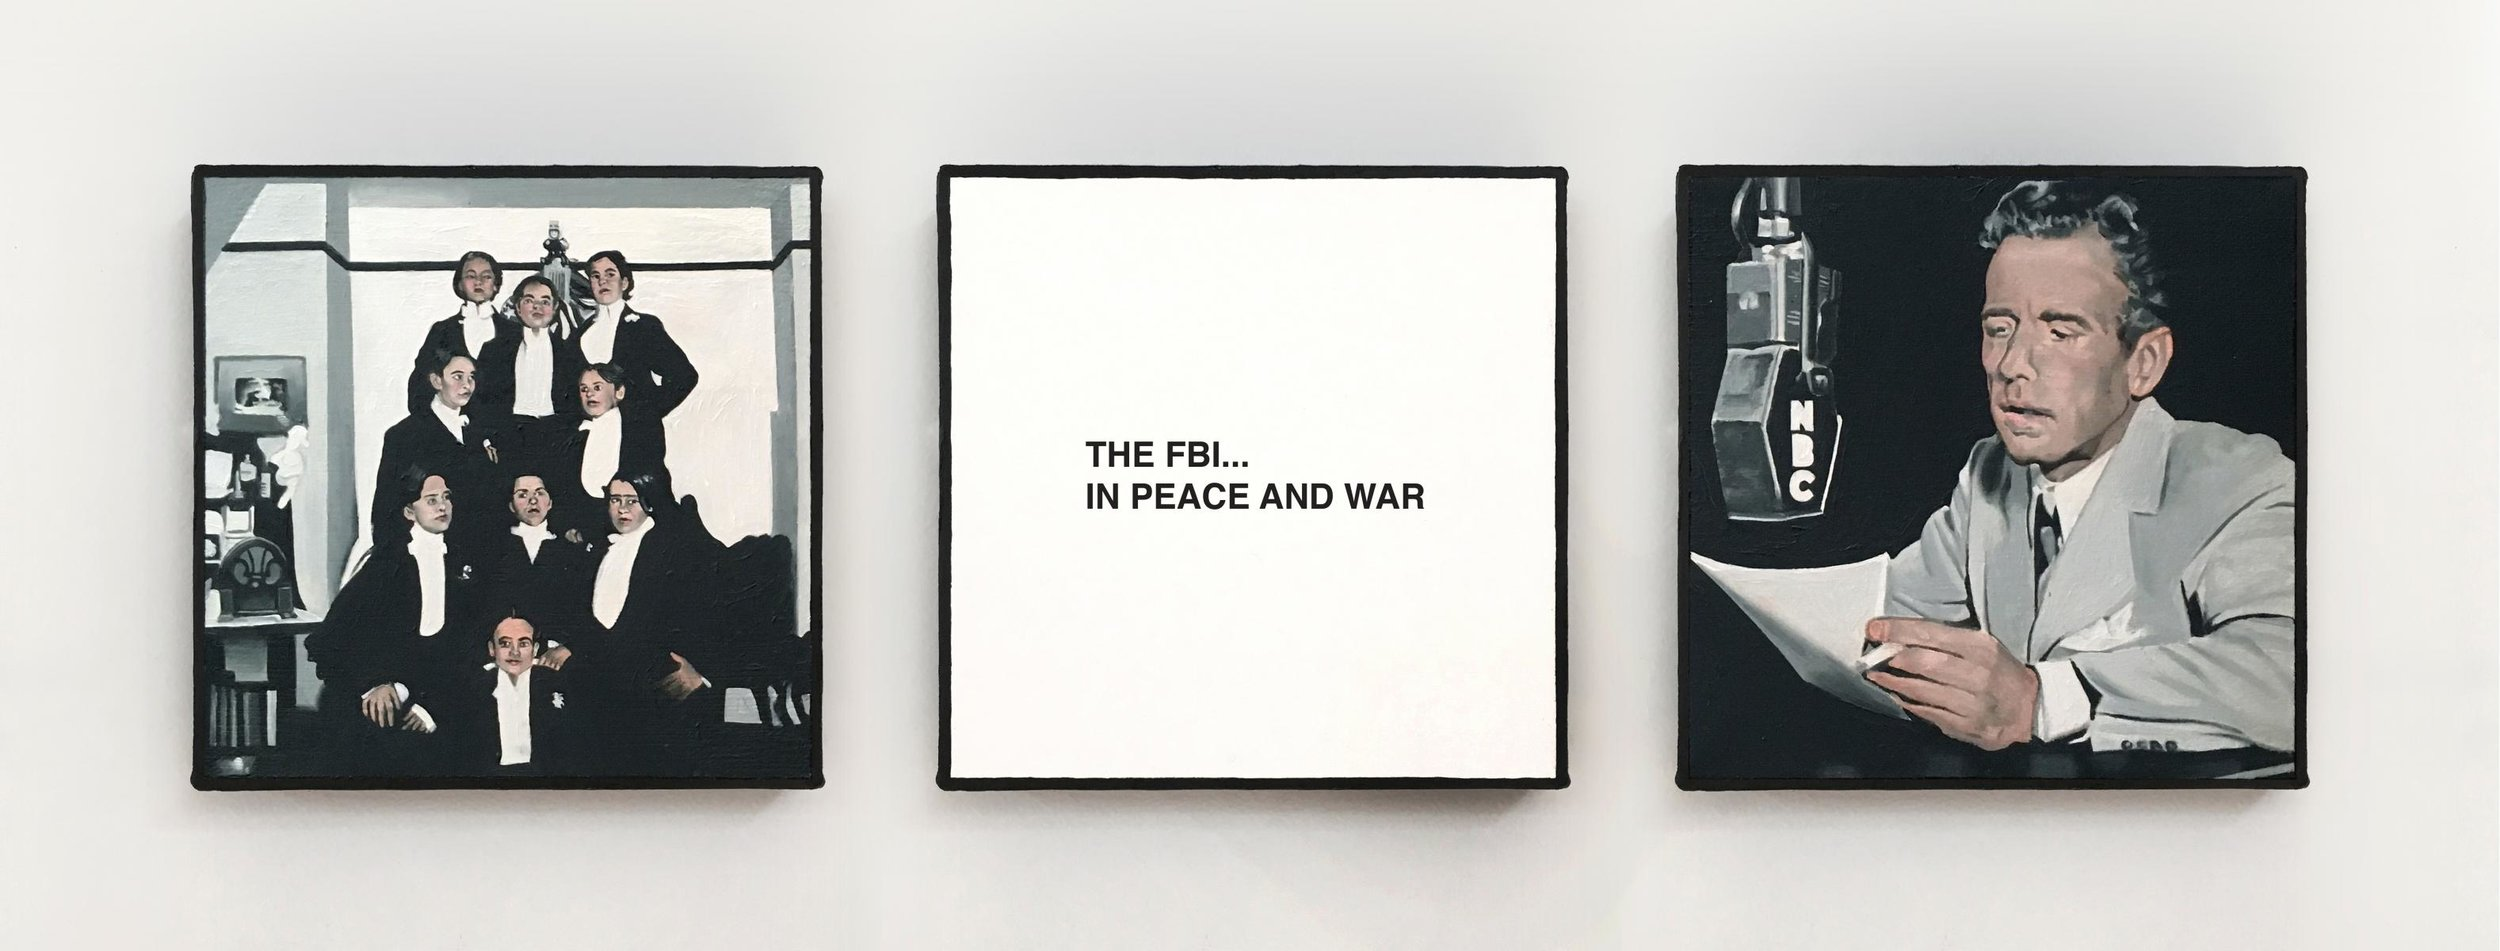 The Golden Age of Radio XIX , 2018  6X6 inches each